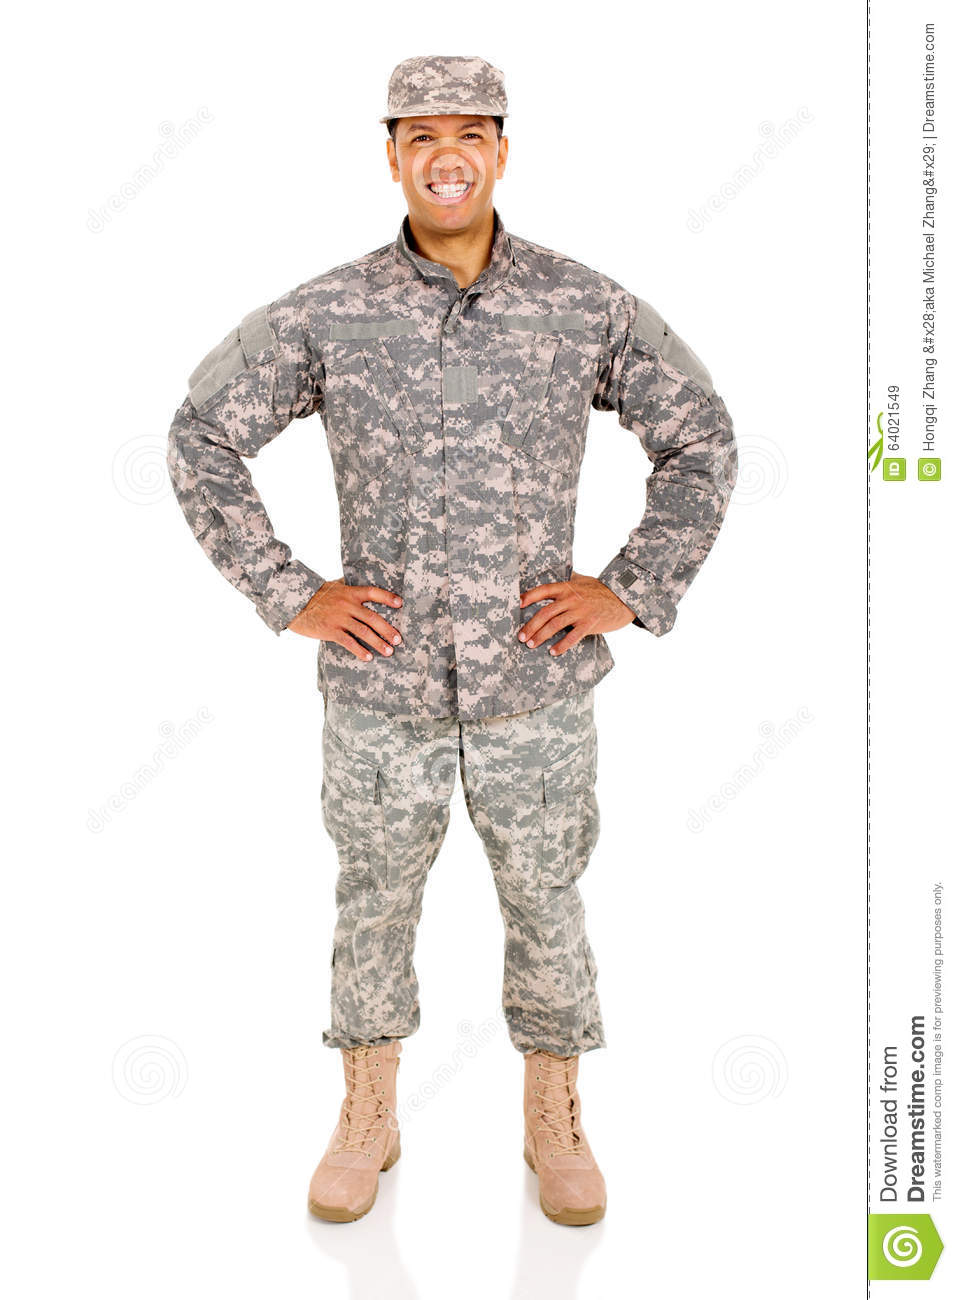 Army soldier posing